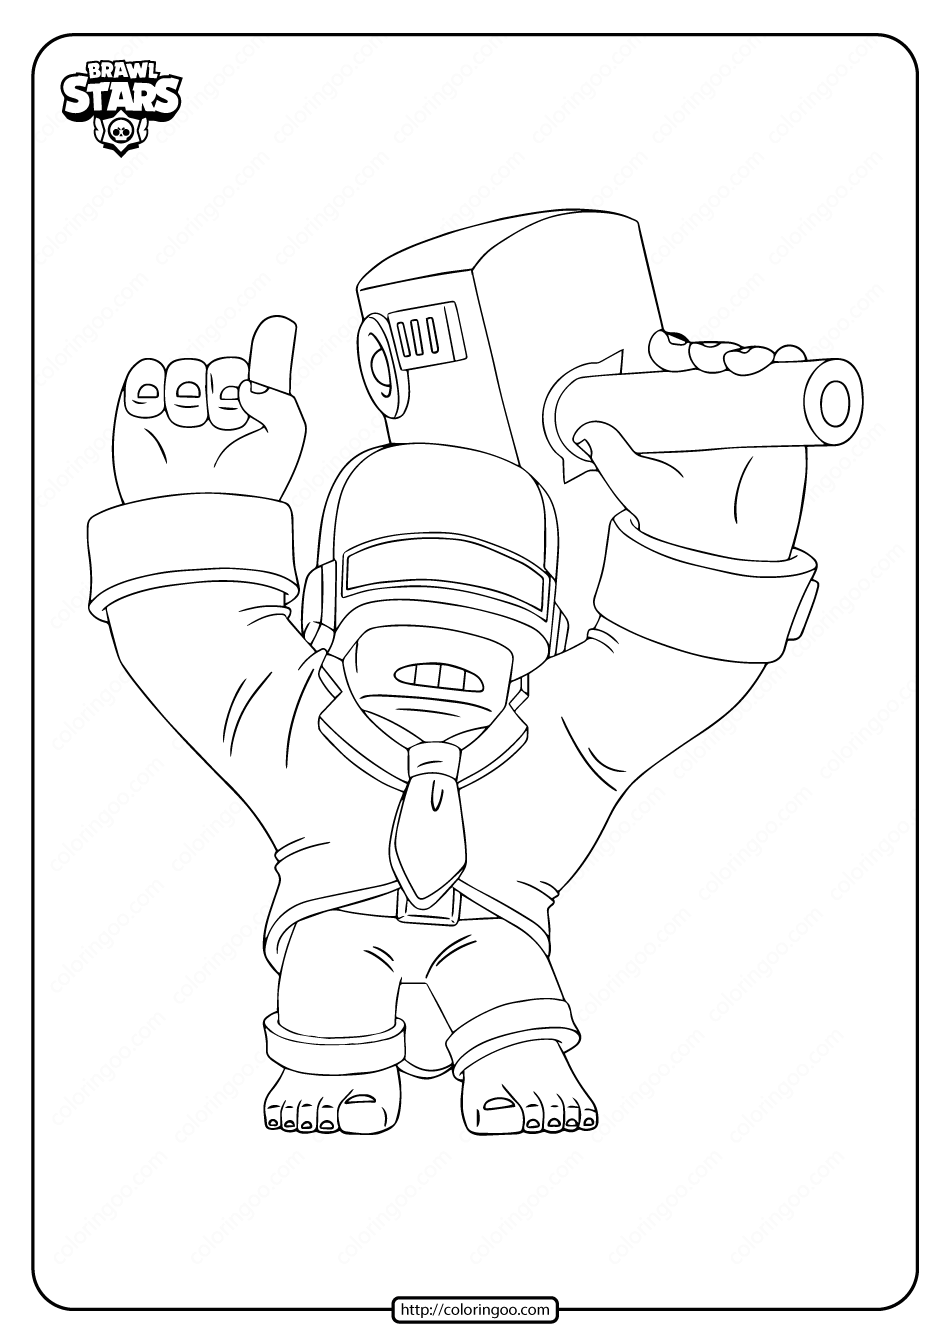 Printable Brawl Stars Dj Frank Coloring Pages Star Coloring Pages Coloring Pages Stars